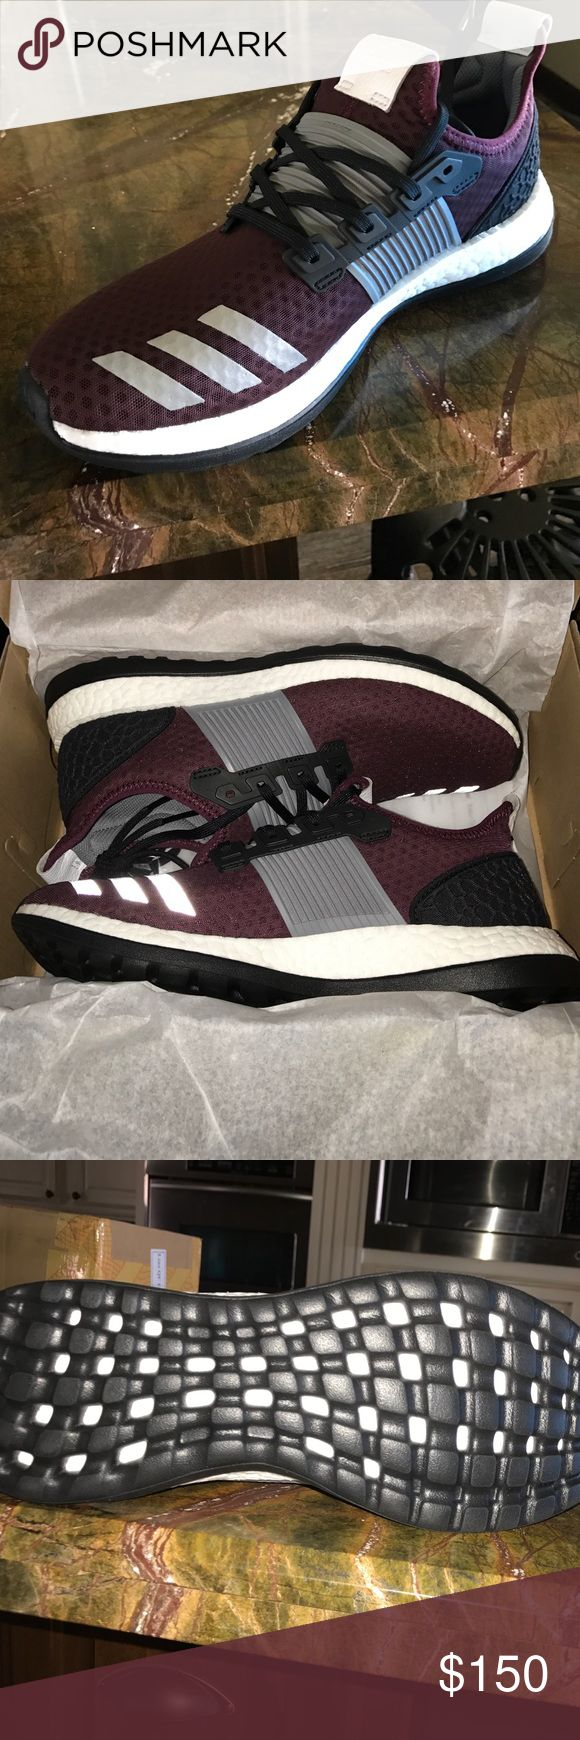 Adidas pure boost running shoes Maroon, black, grey and white adidas running shoes. Brand new! Never been worn and still in the box! Adidas Shoes Athletic Shoes